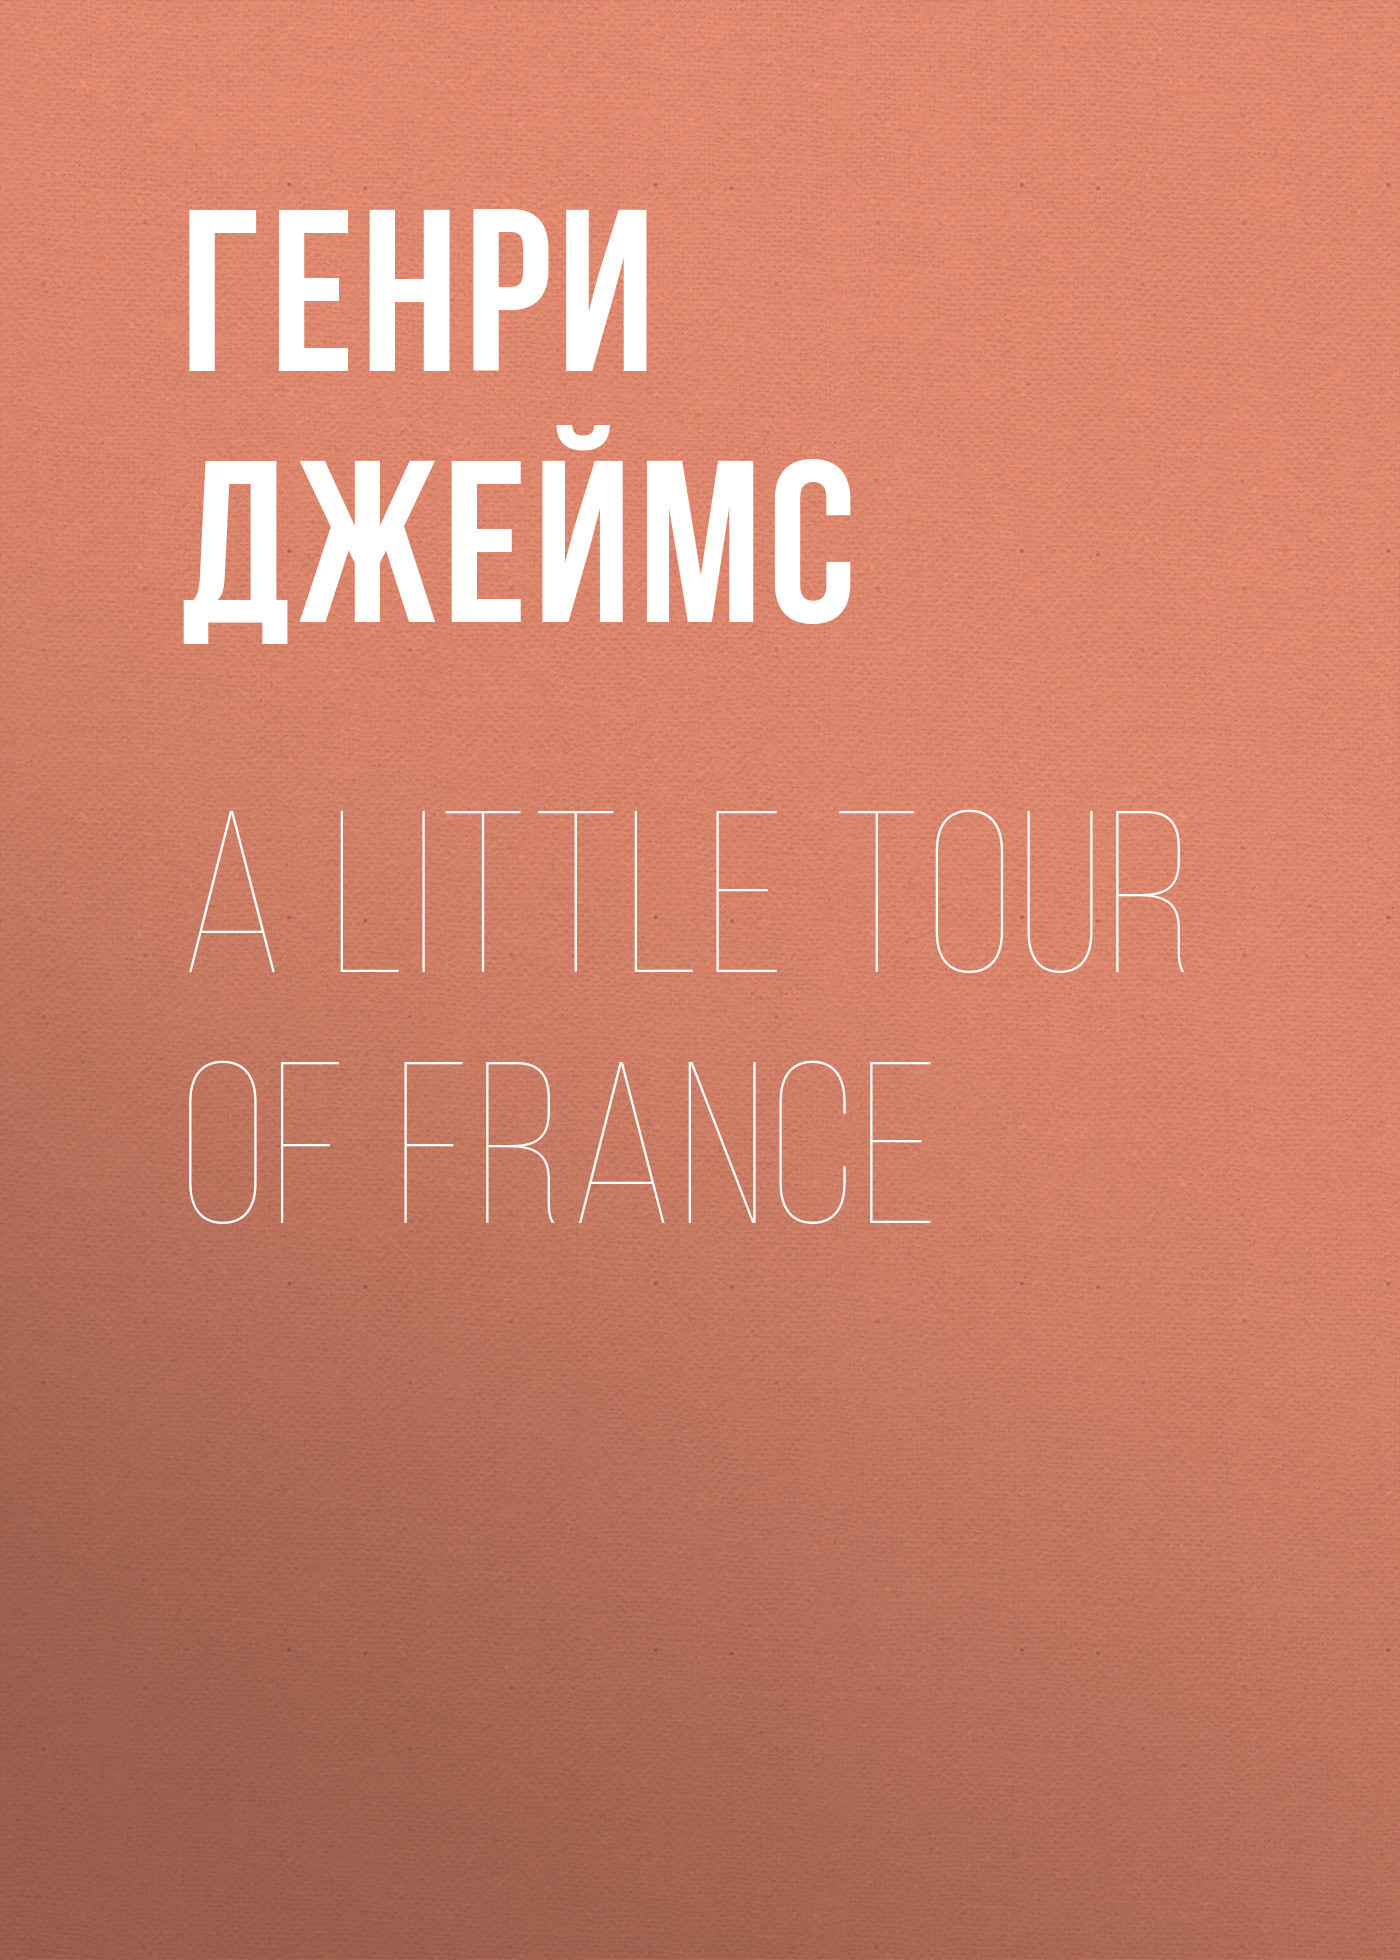 A Little Tour of France